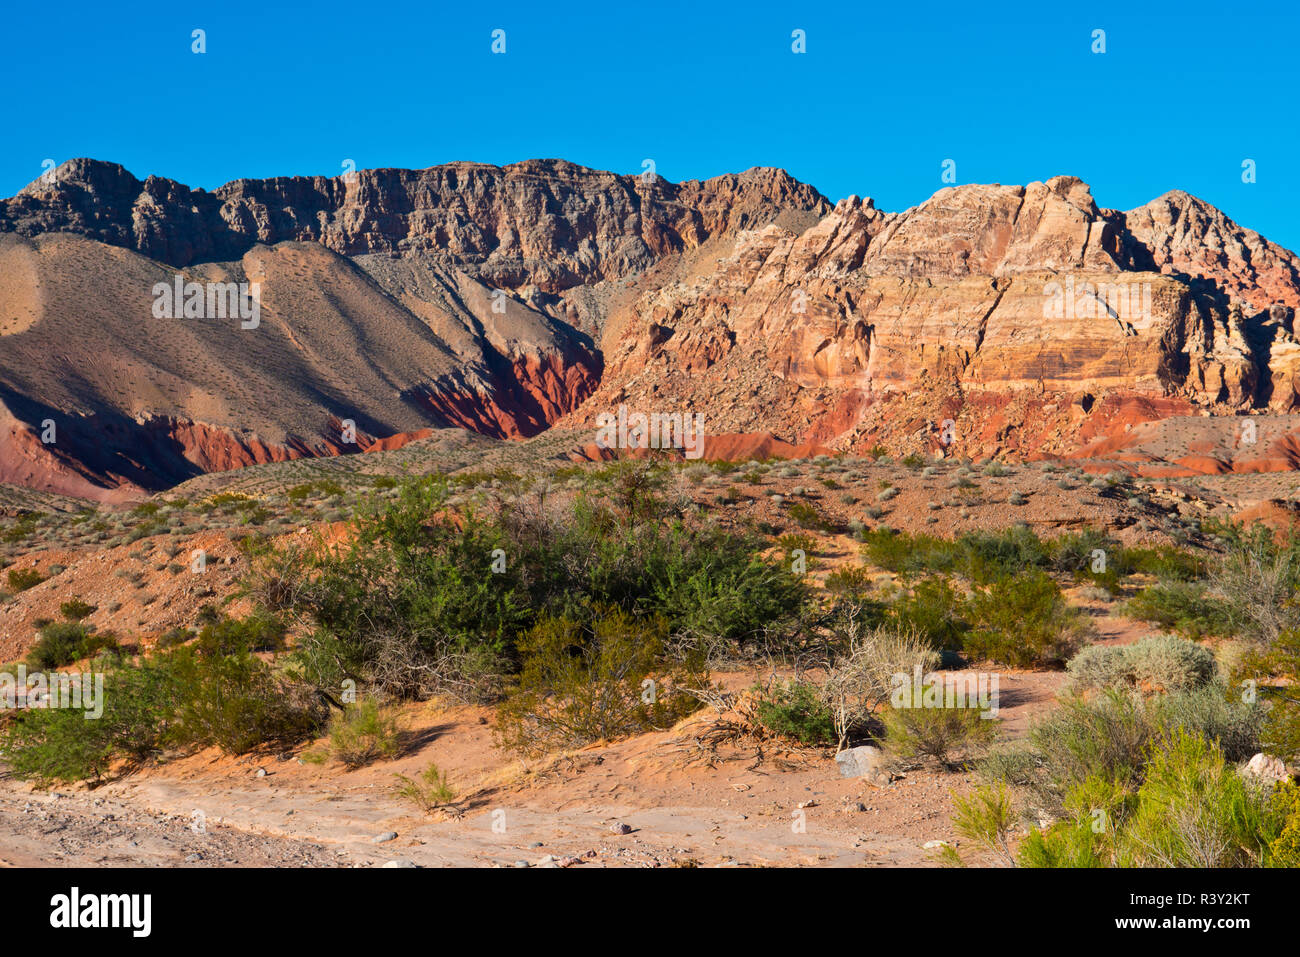 USA, Nevada. Mesquite. Gold Butte National Monument - Stock Image